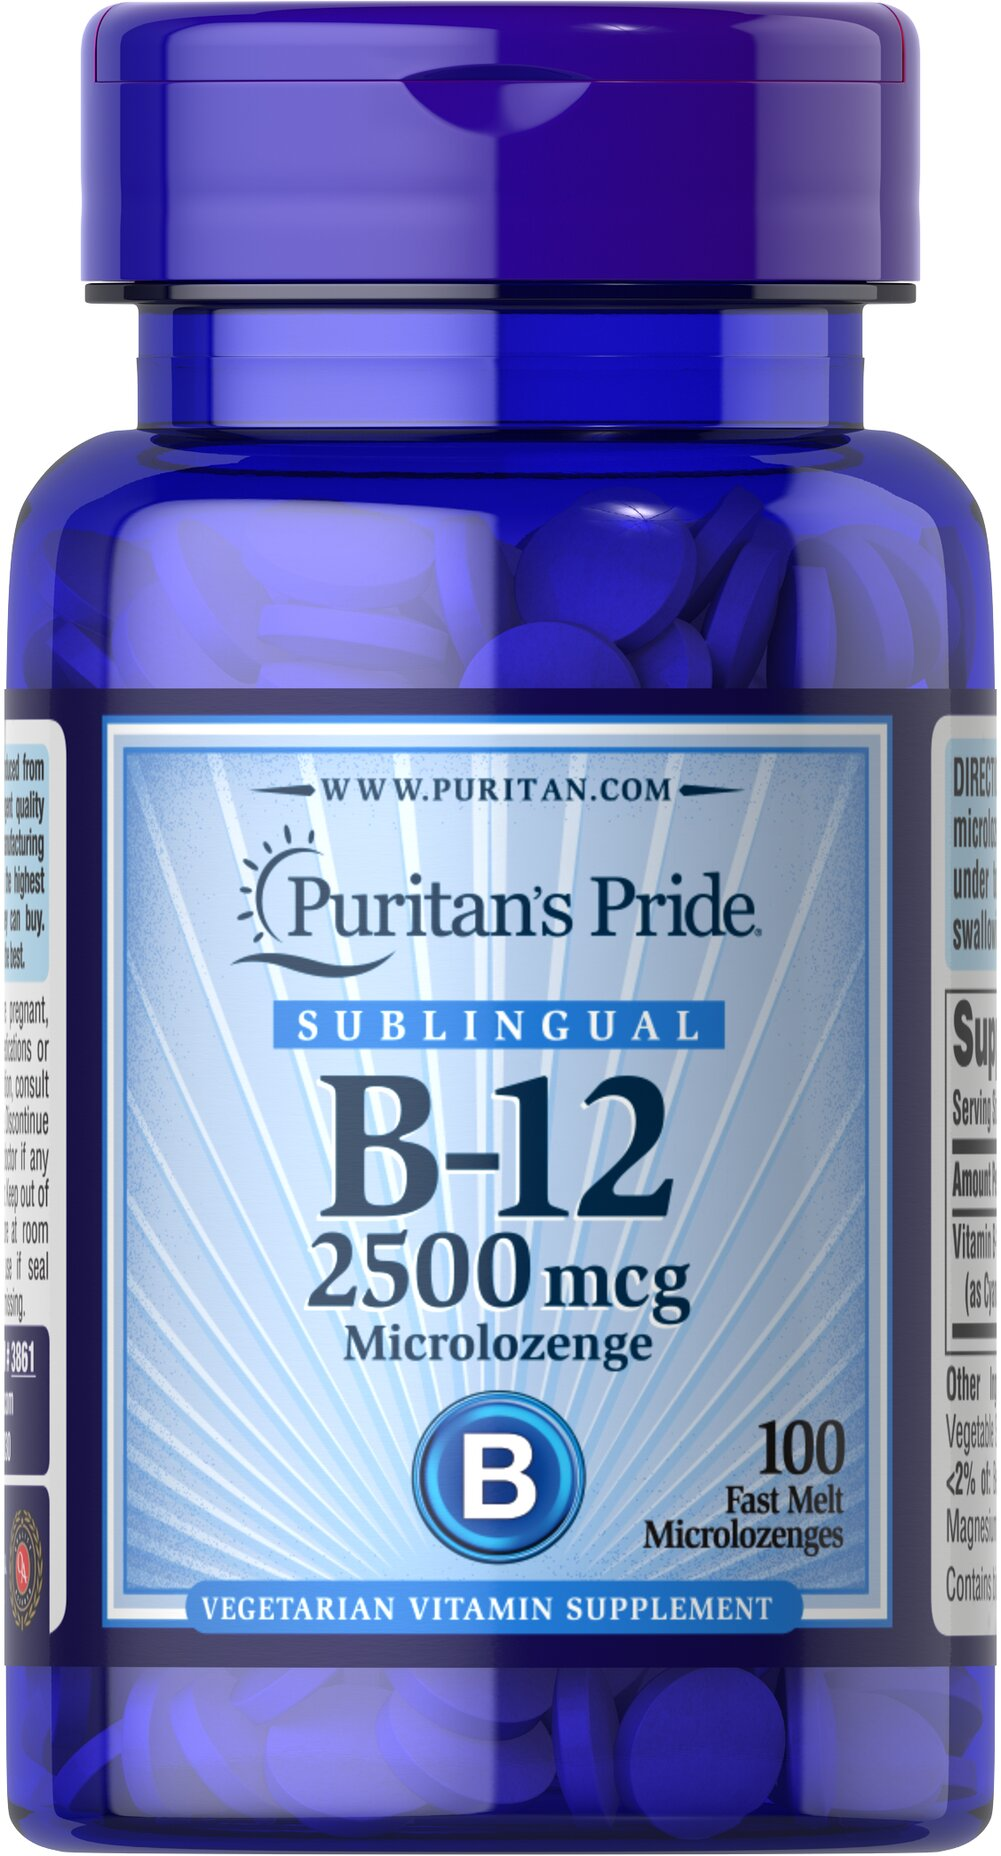 Vitamin B-12 2500 mcg Sublingual Thumbnail Alternate Bottle View